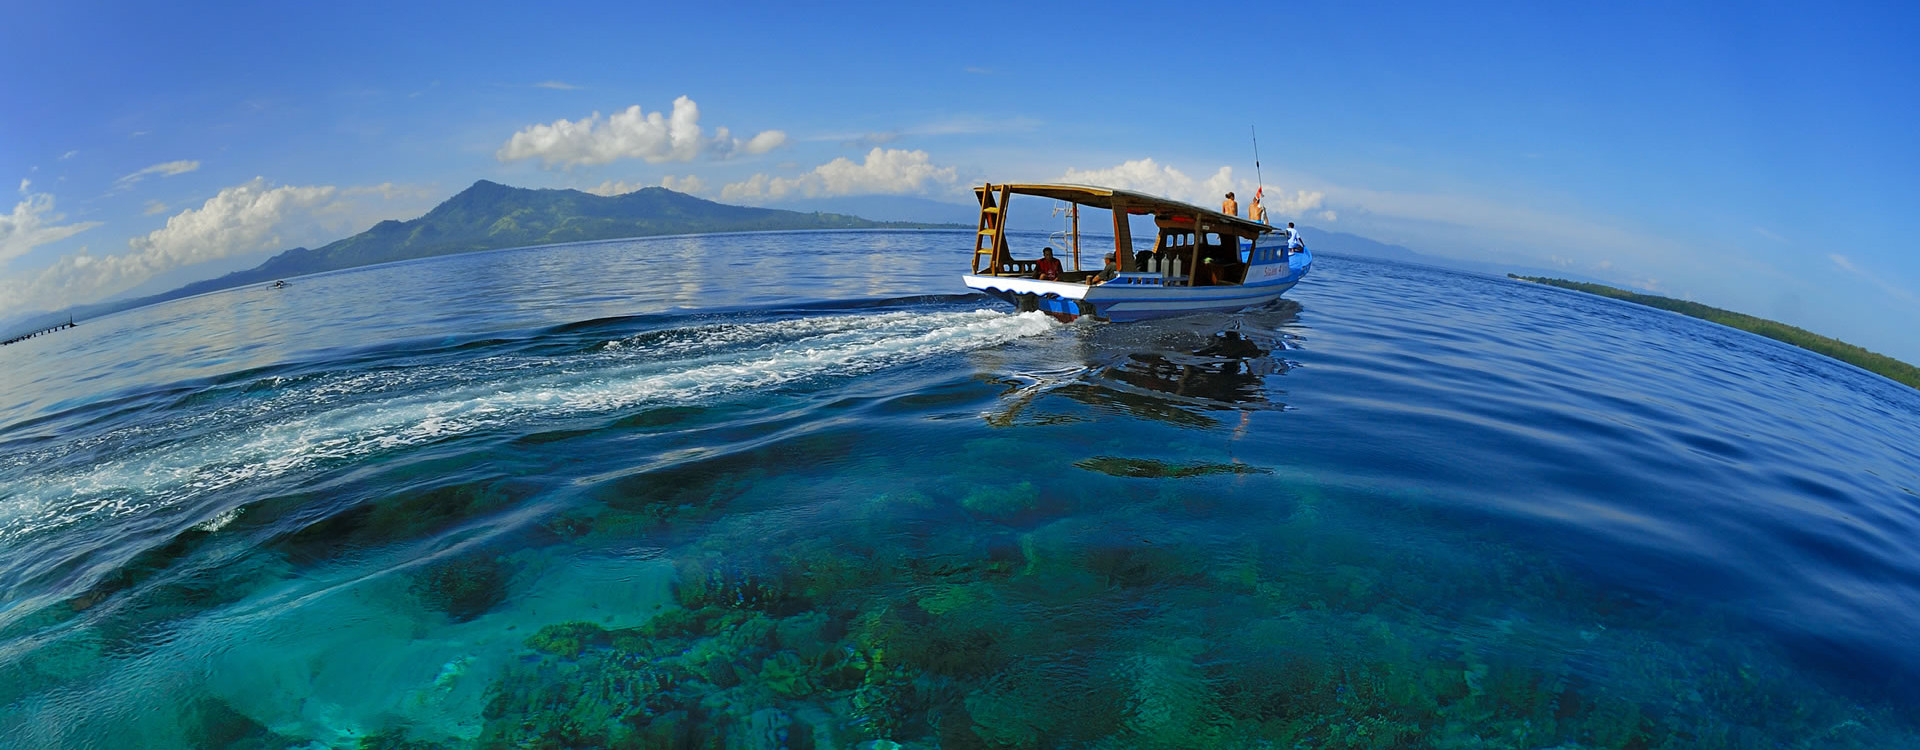 Laut Indonesia Related Keywords & Suggestions - Laut Indonesia Long ...